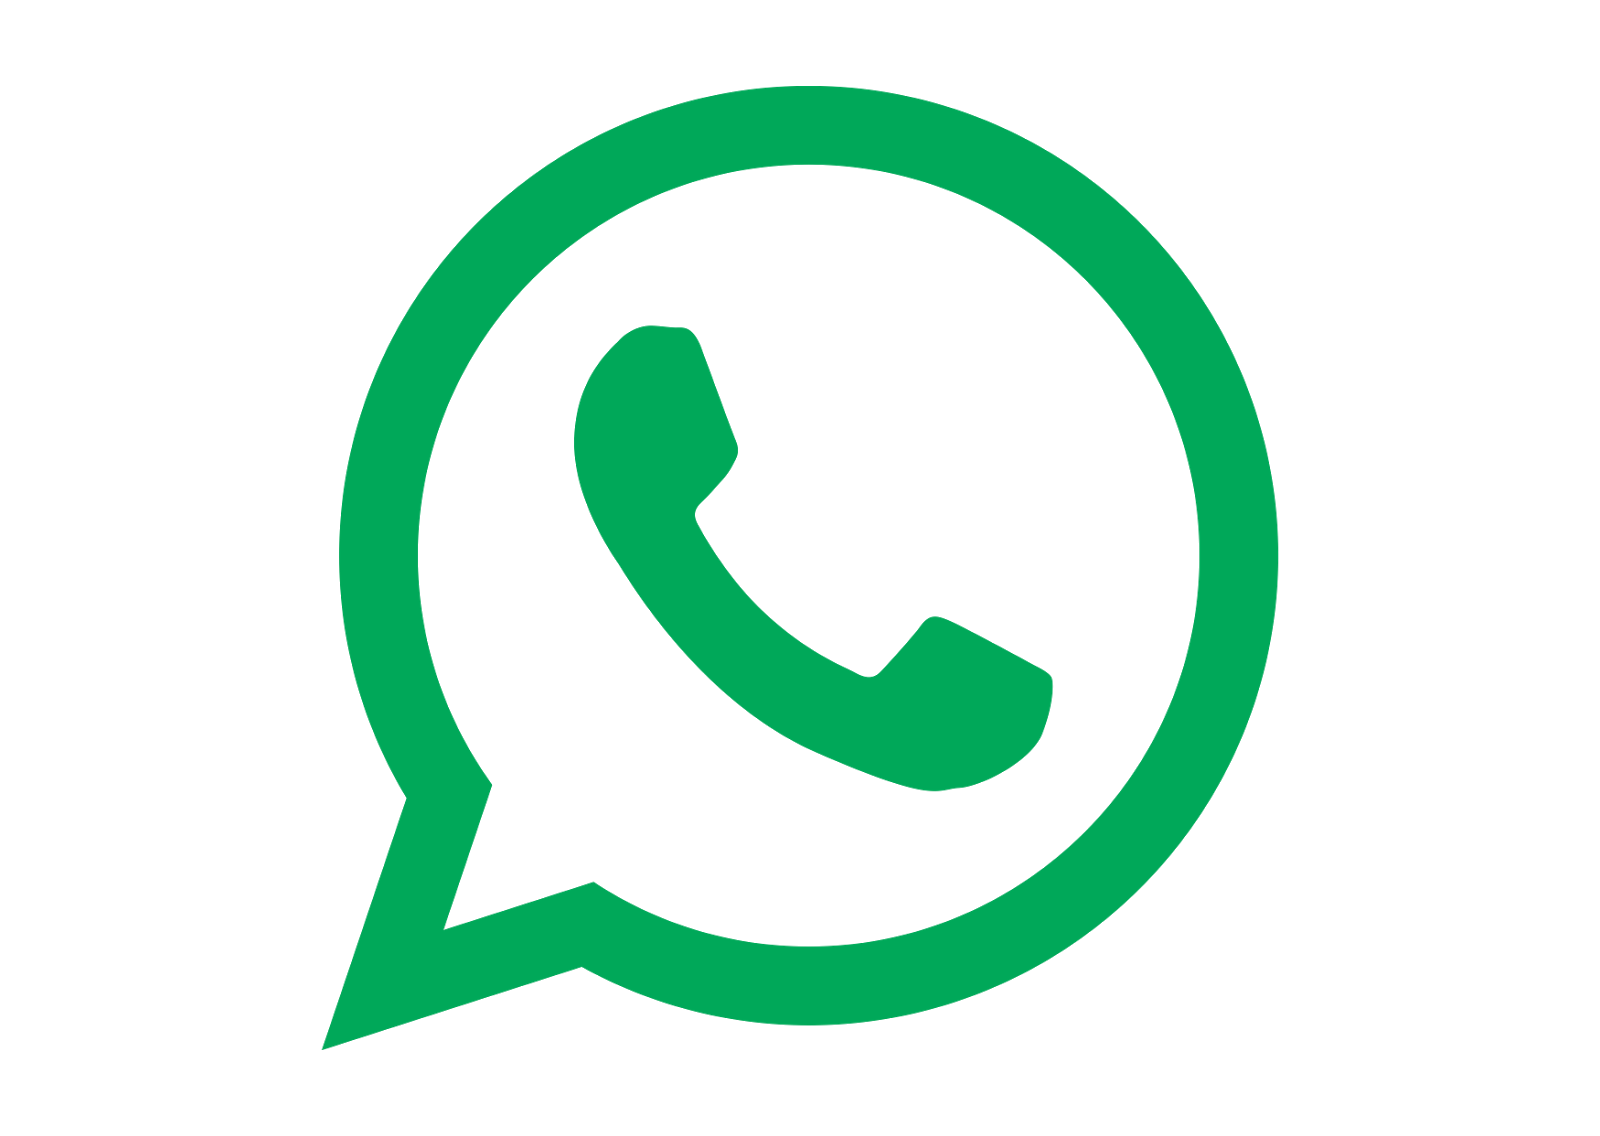 Whatsapp Logo Vector Format Cdr, Ai, Eps, Svg, PDF, PNG